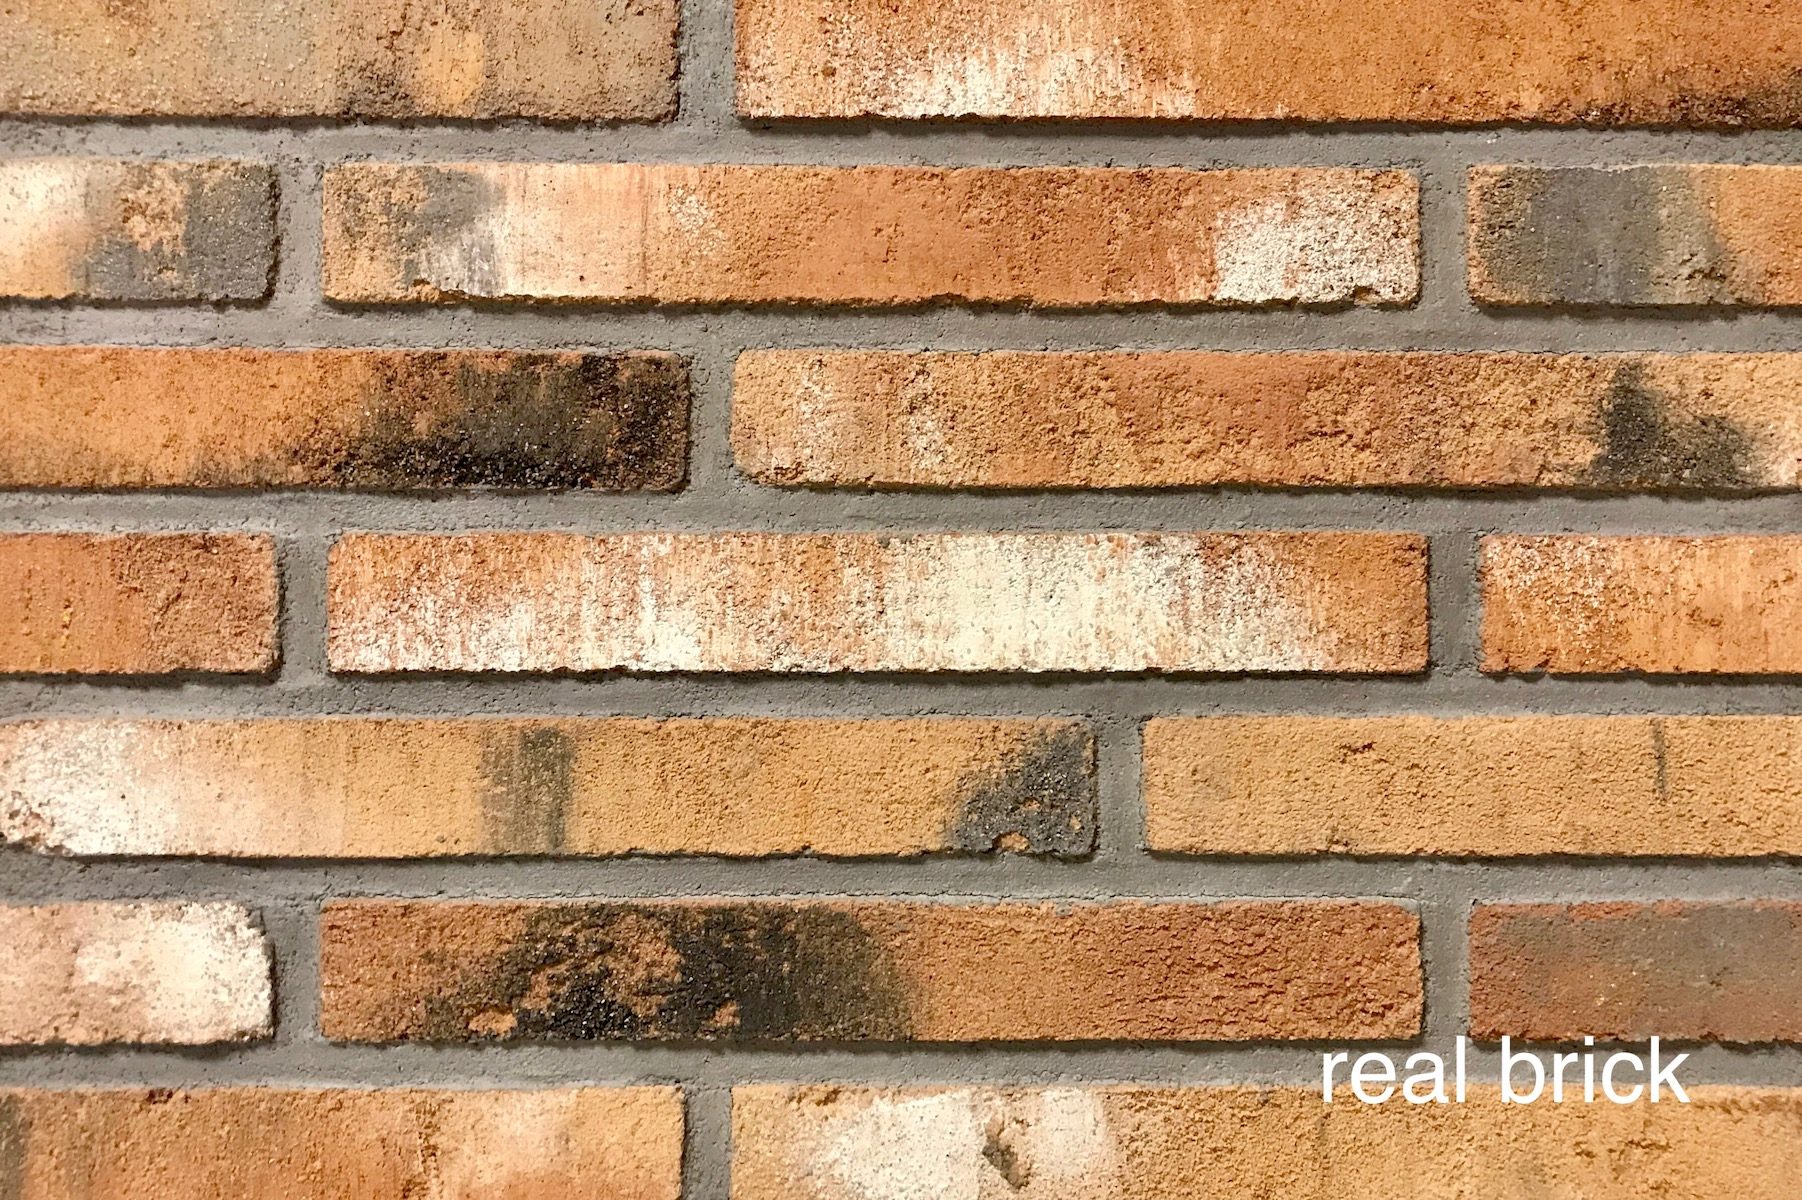 Real brick 1 rigel